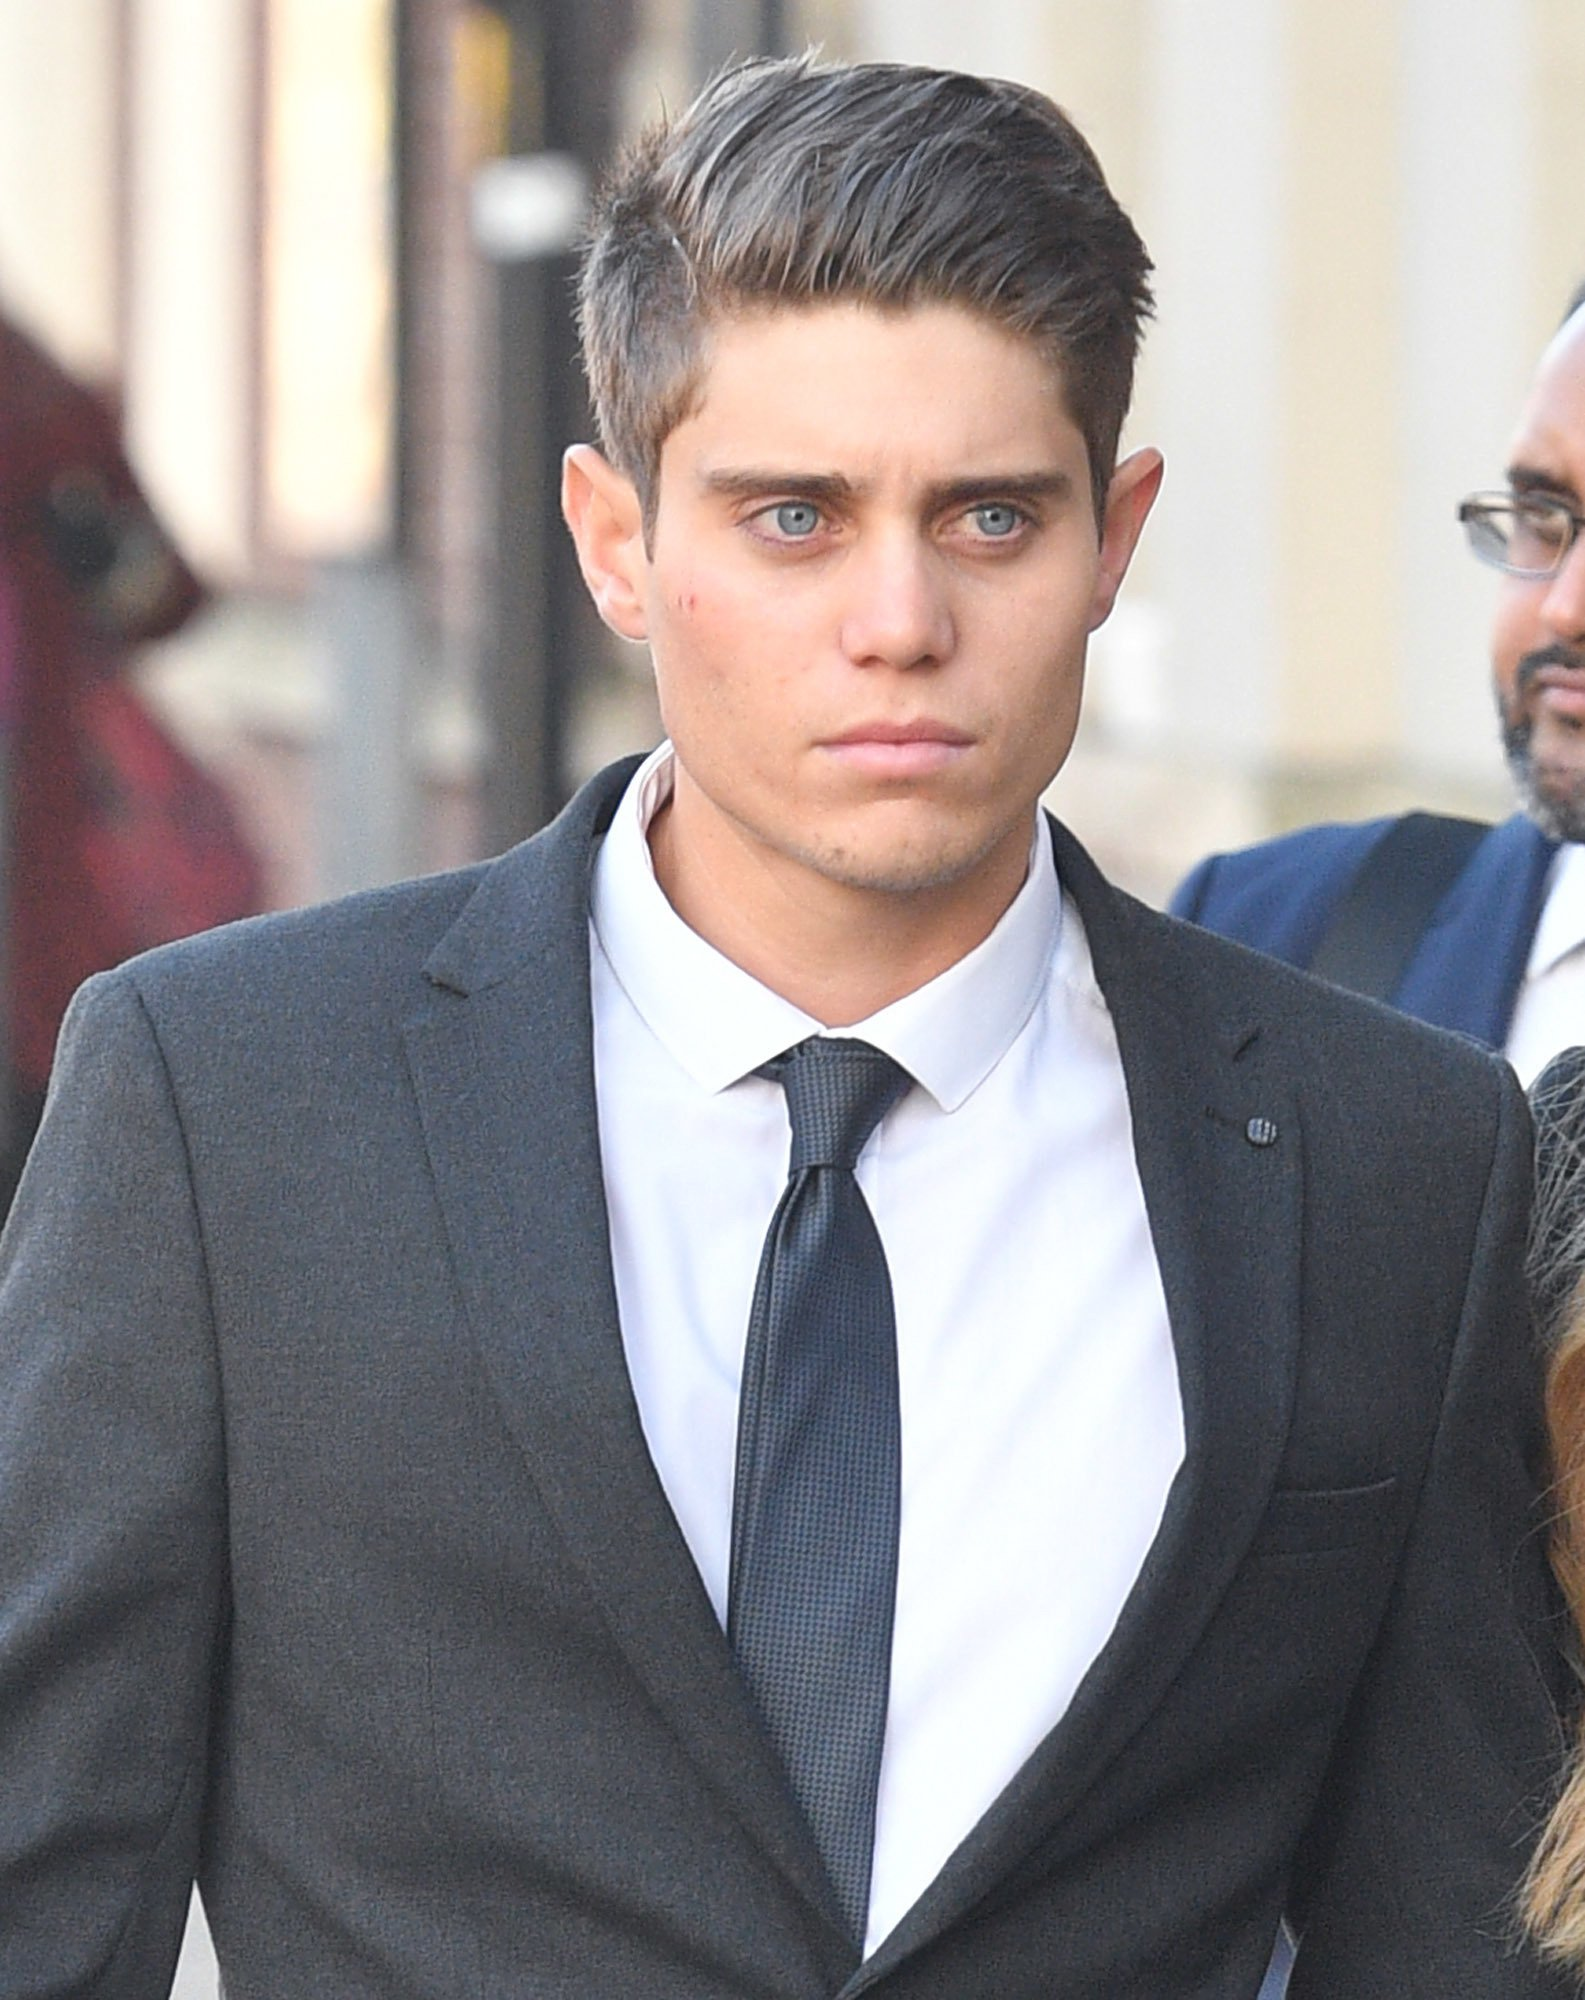 Alex Hepburn arrives at Worcester Crown Court where he is charged with two counts of rape alleged to have been committed in 2017. PRESS ASSOCIATION Photo. Picture date: Wednesday January 9, 2019. See PA story COURTS Cricketer. Photo credit should read: Ben Birchall/PA Wire